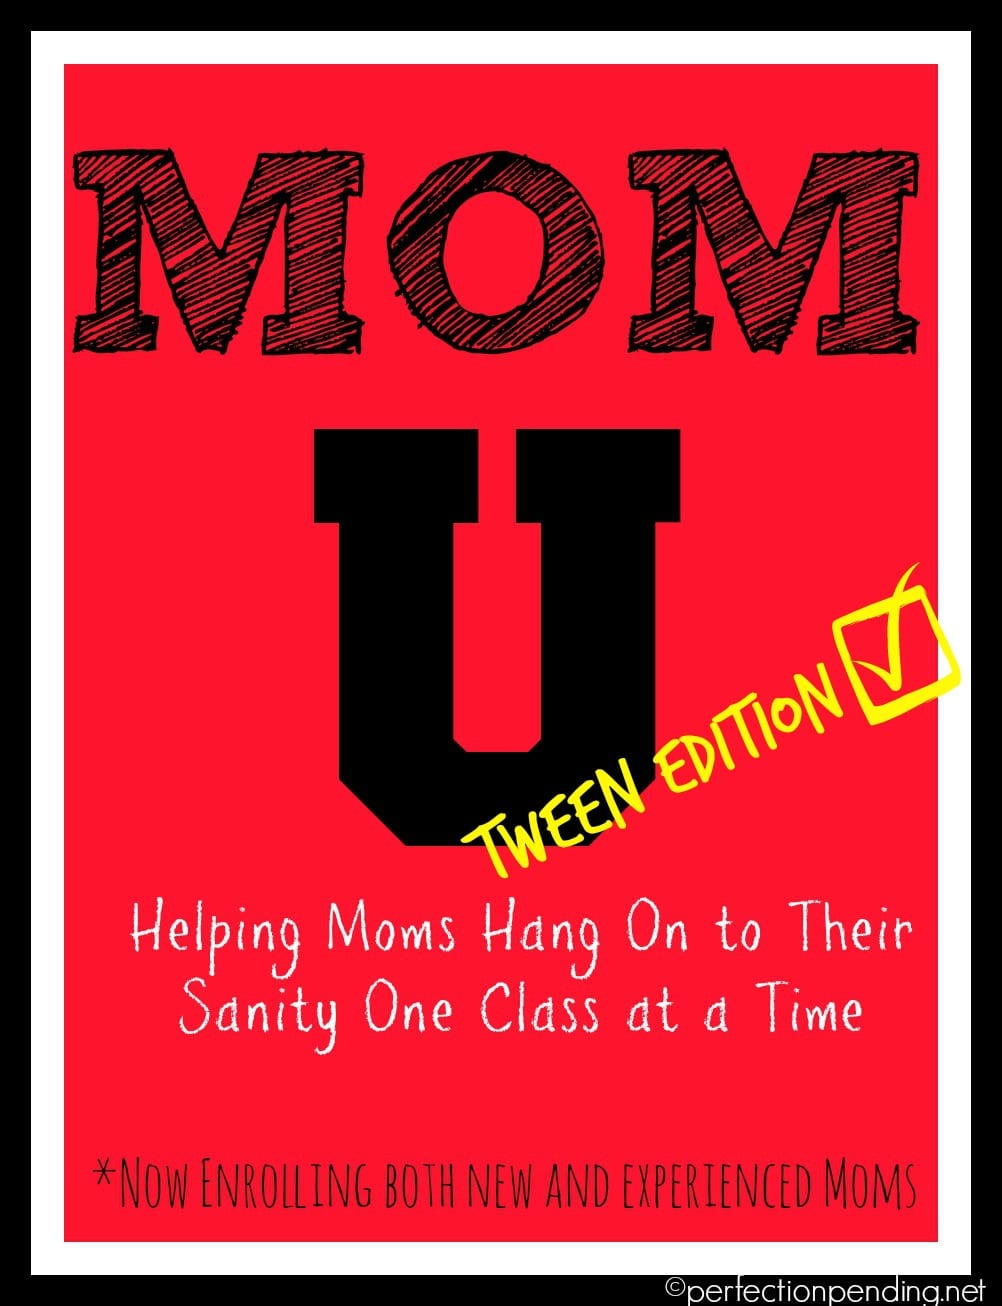 Mom University Tween Edition- Helping Moms Hang On to Their Sanity One Class at a Time!!